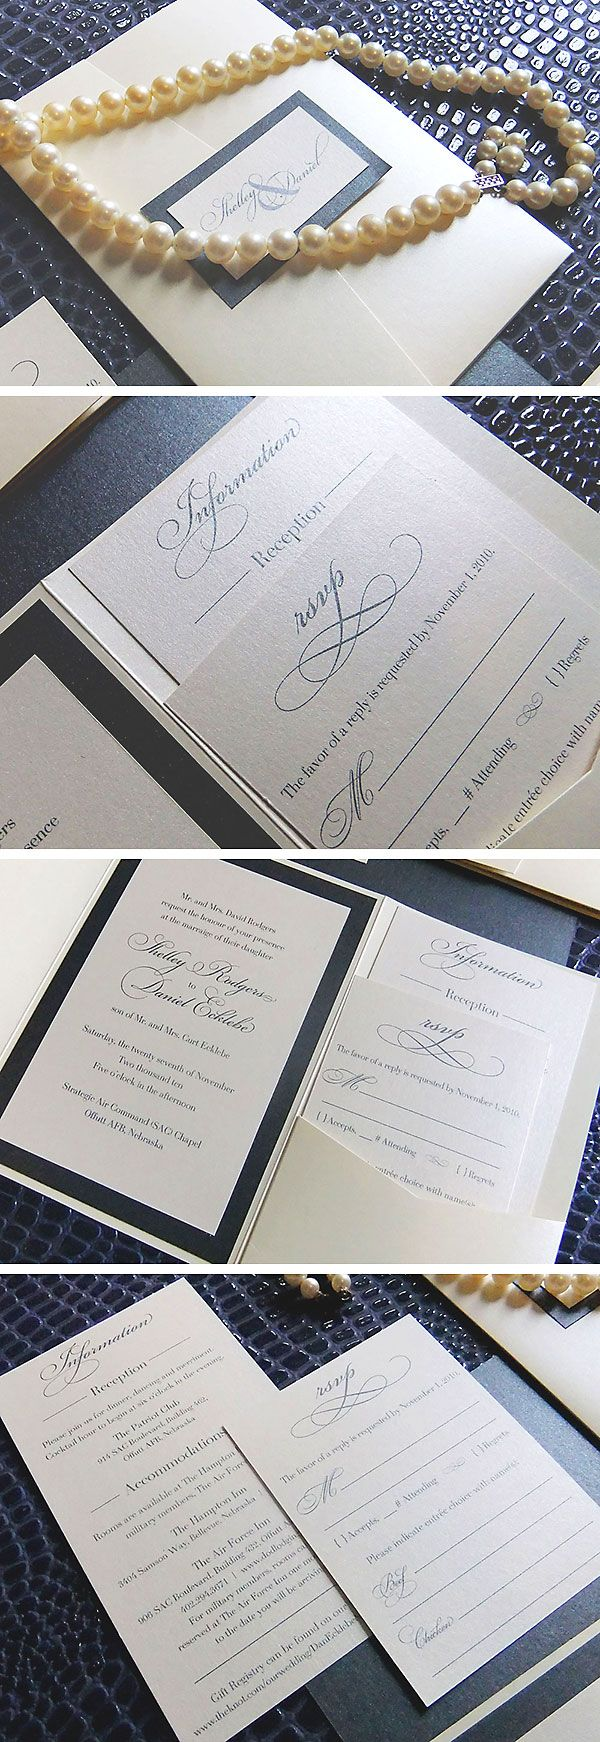 14 best Wedding Invites and Staionary images on Pinterest ...